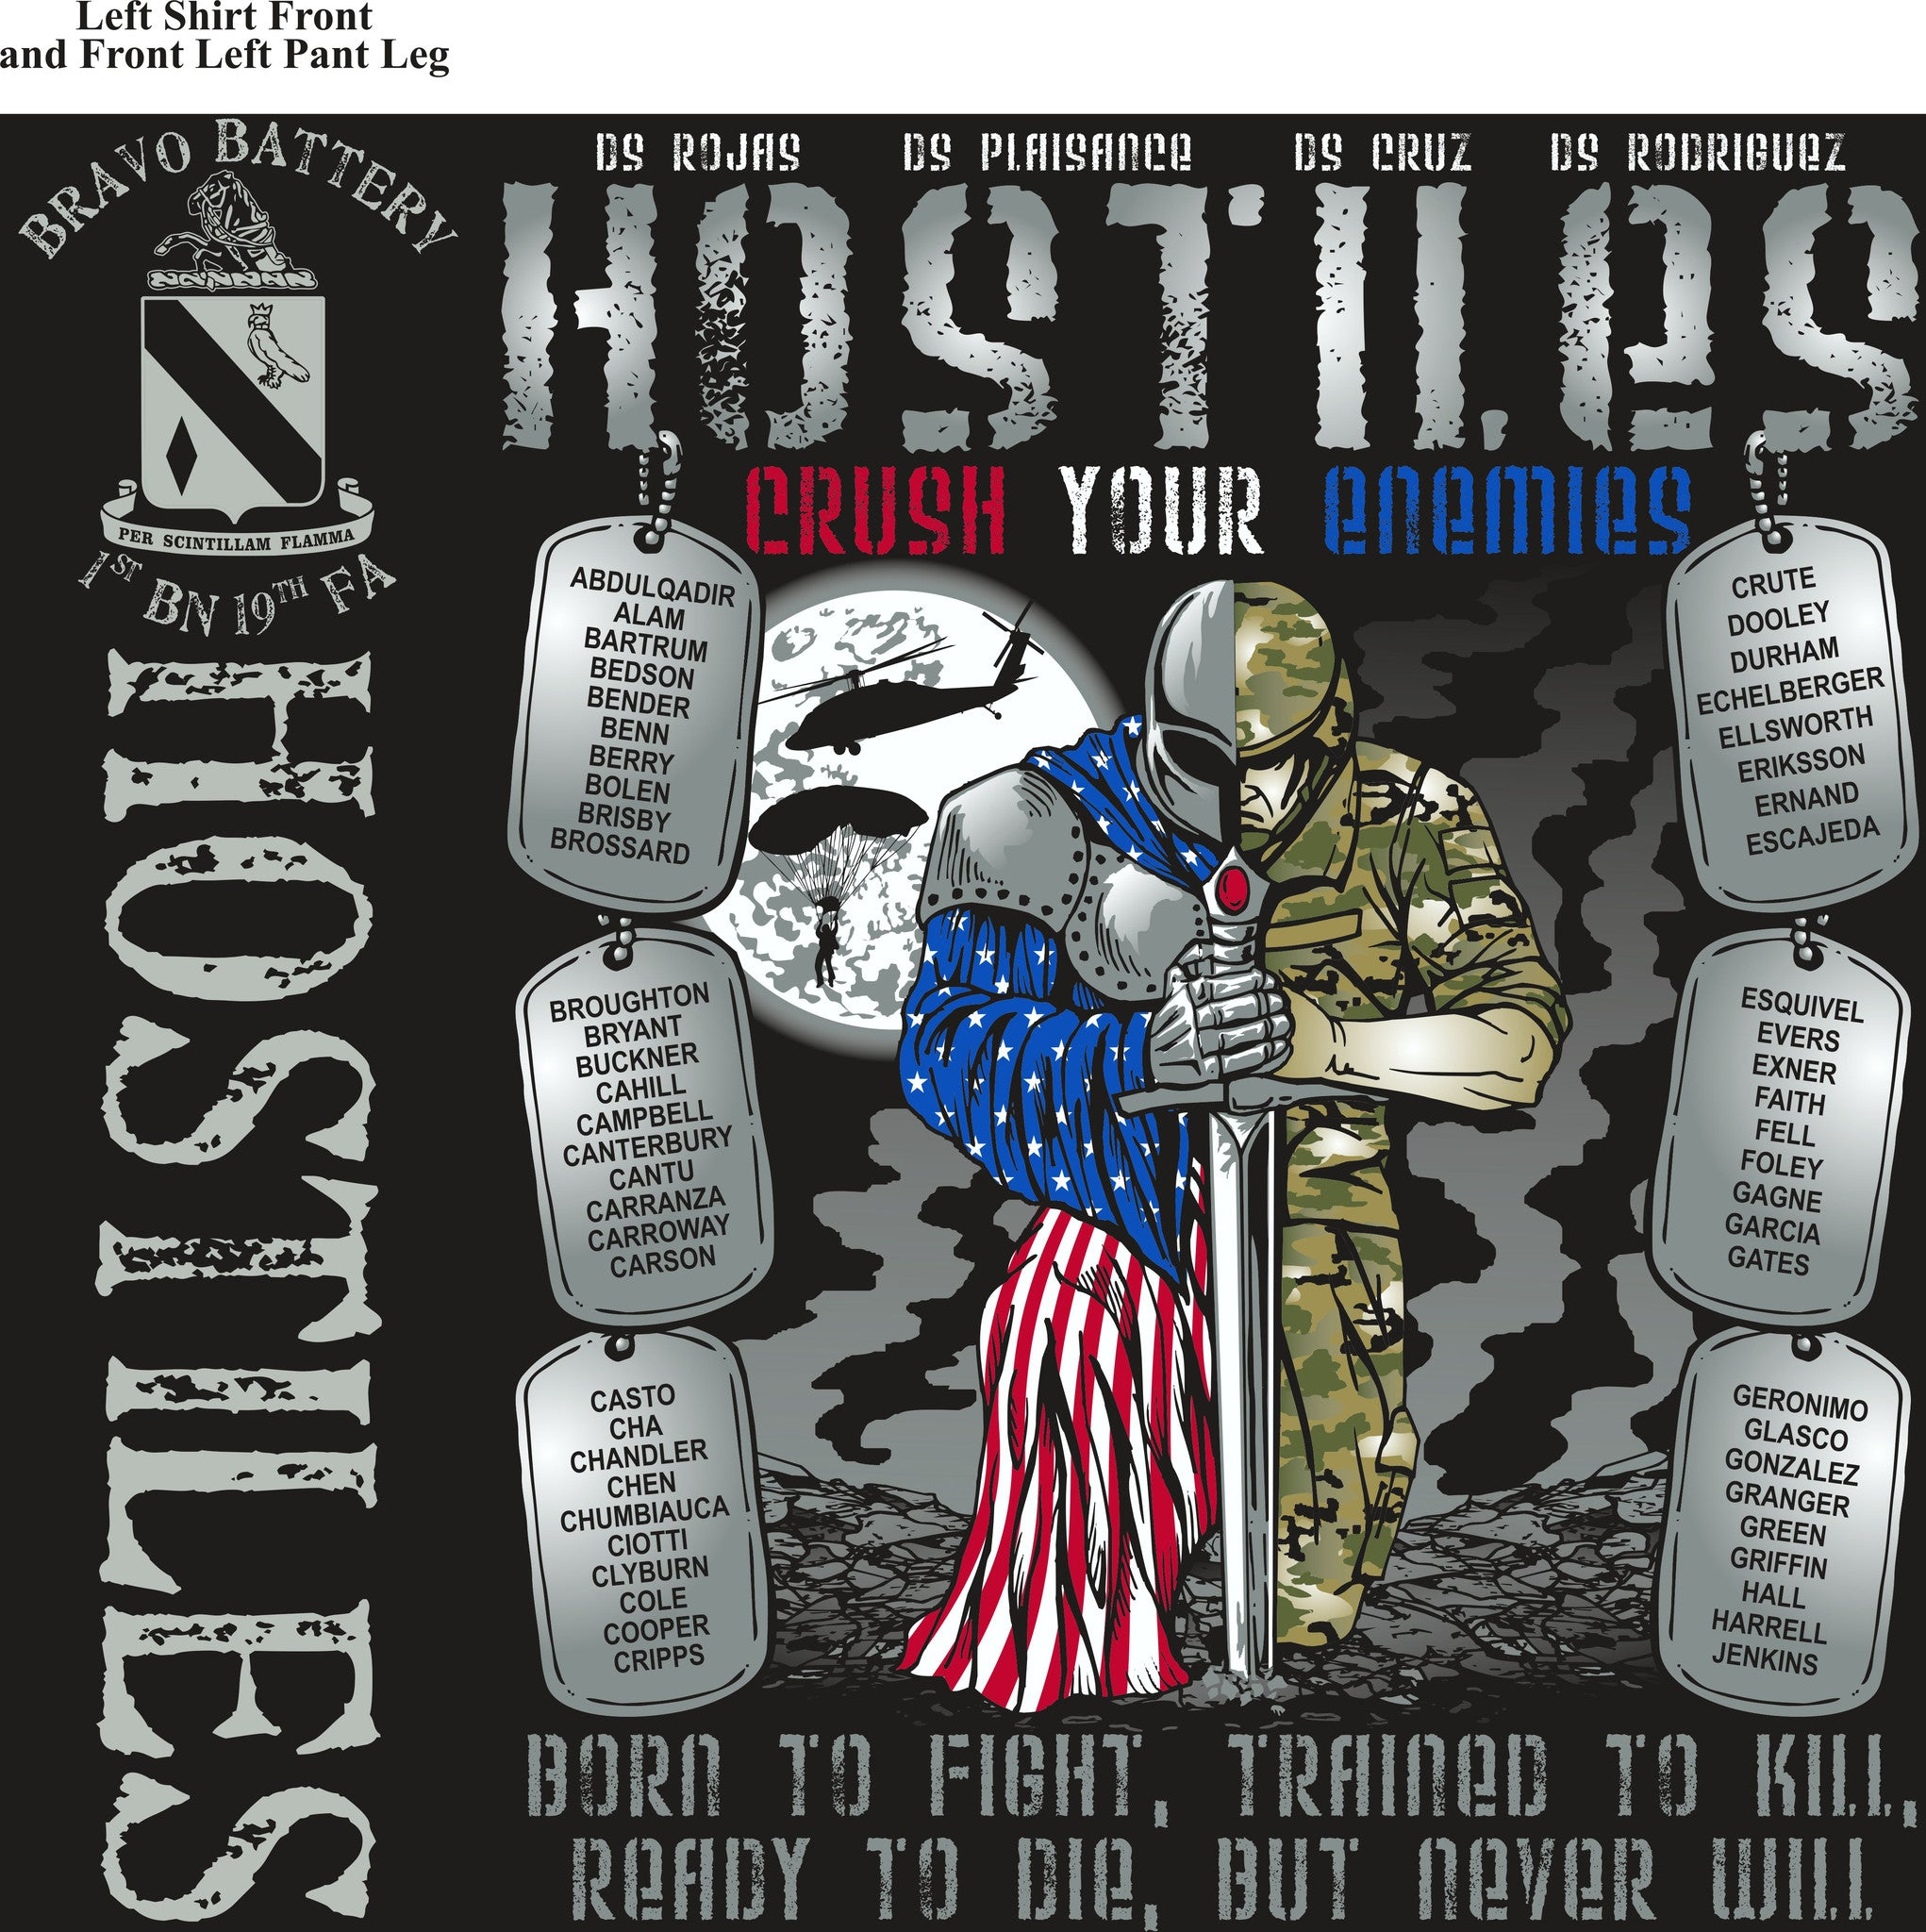 PLATOON SHIRTS (2nd generation print) BRAVO 1st 19th HOSTILES AUG 2016